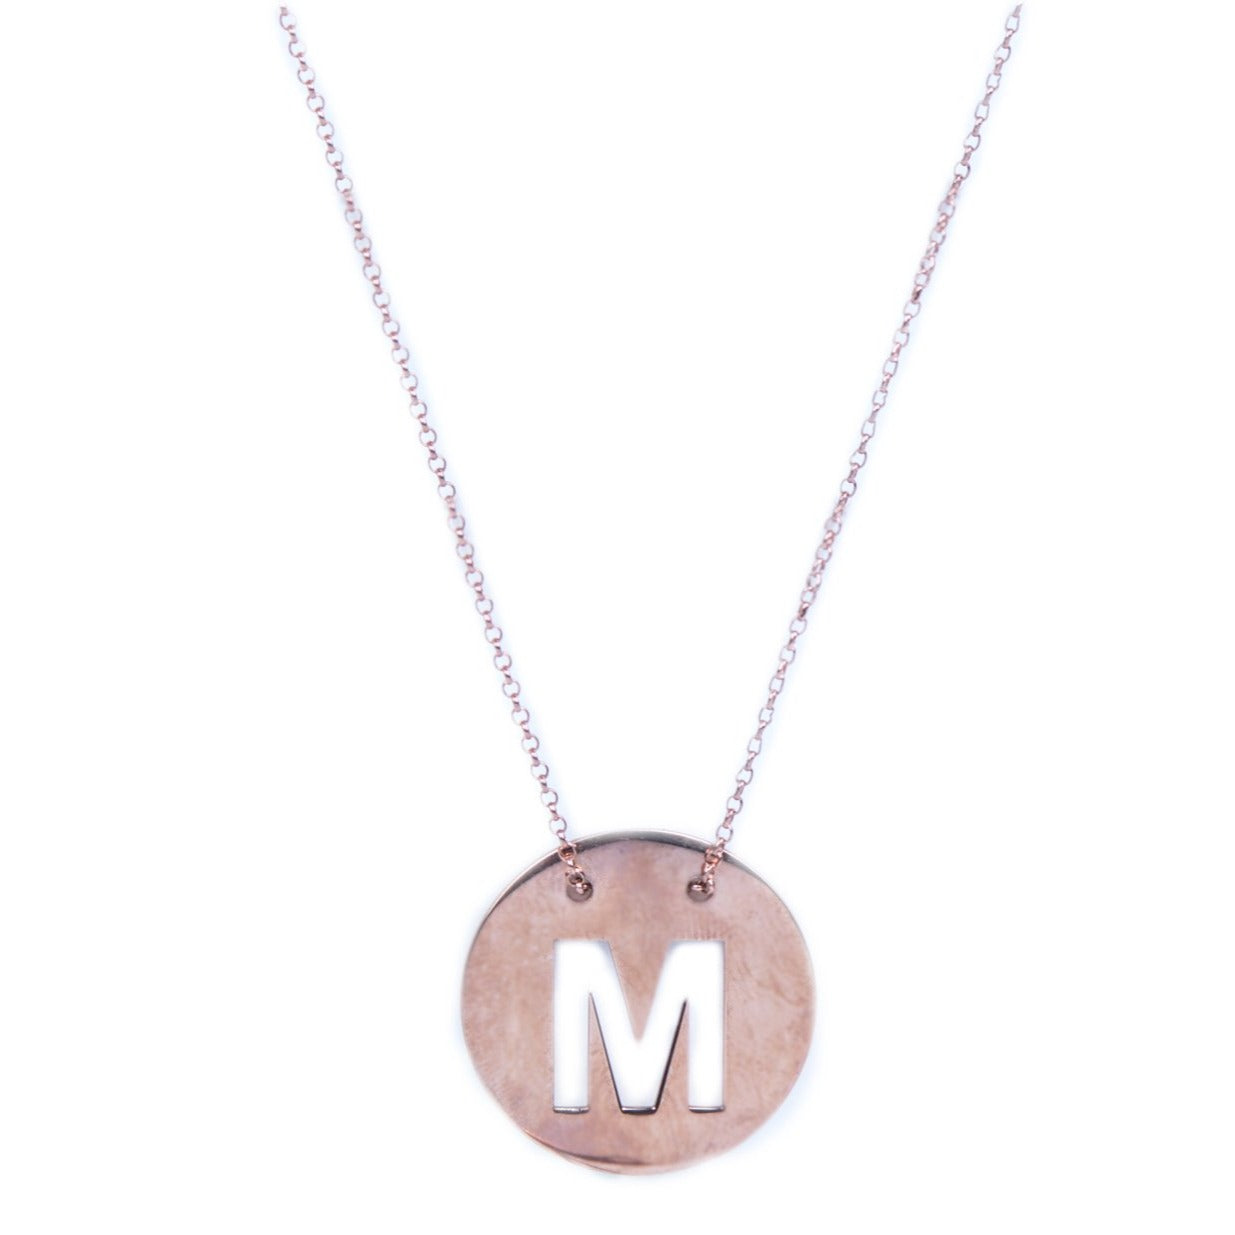 Personalised Sterling Silver Round Necklace with Monogram